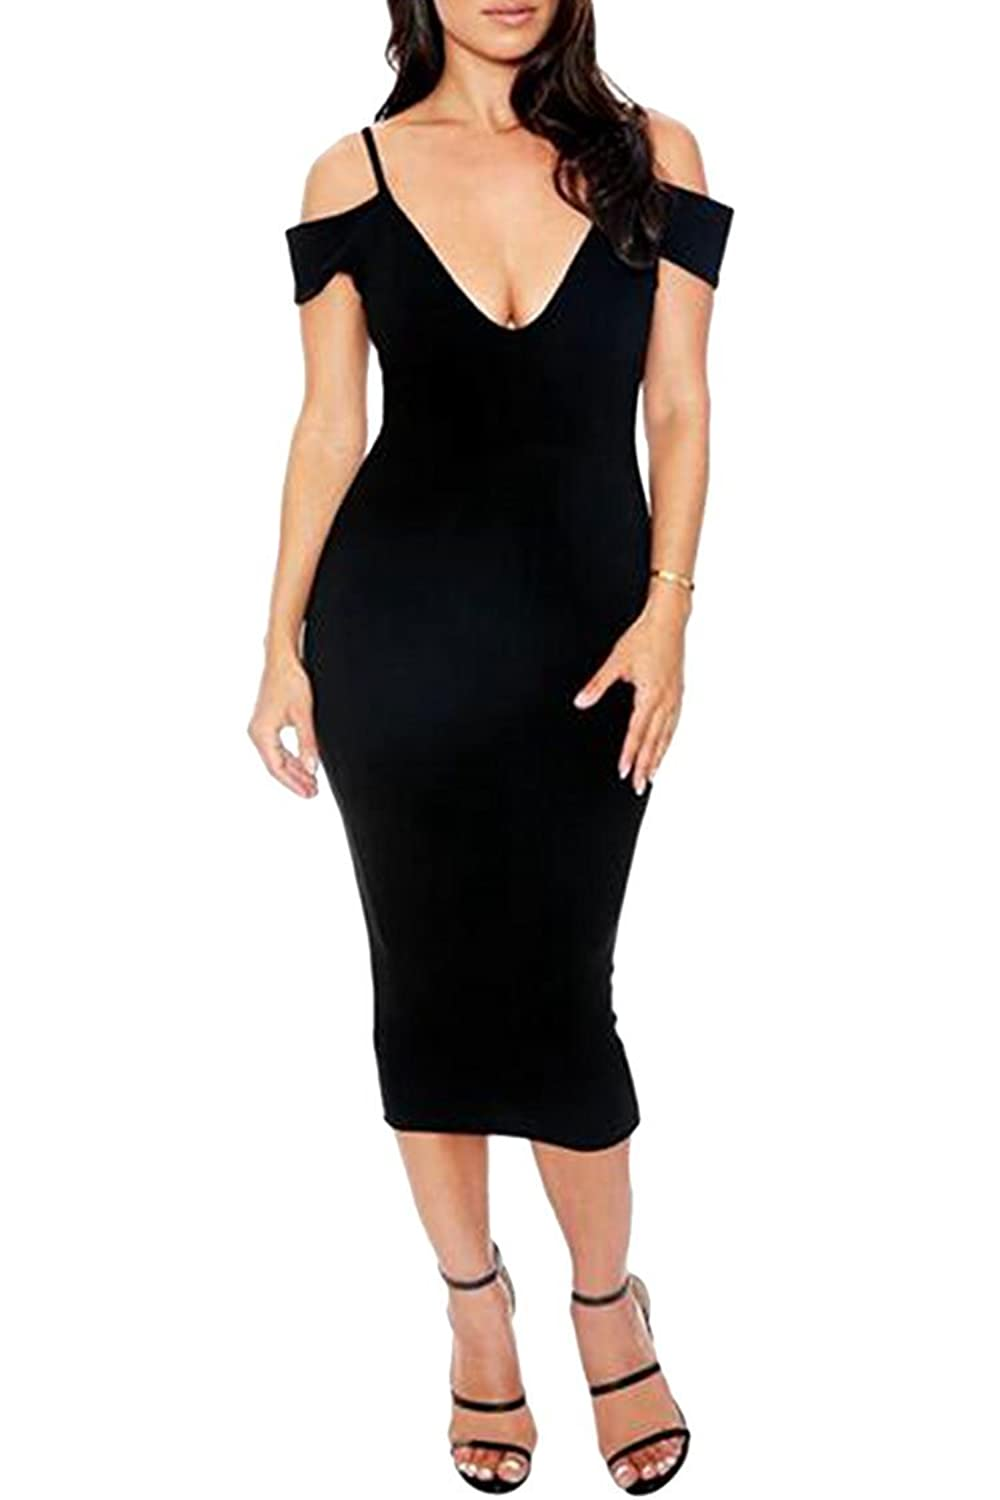 PinkWind Women's Deep V-neck off Shoulder Cut-out Slip Bodycon Prom Pencil Dress